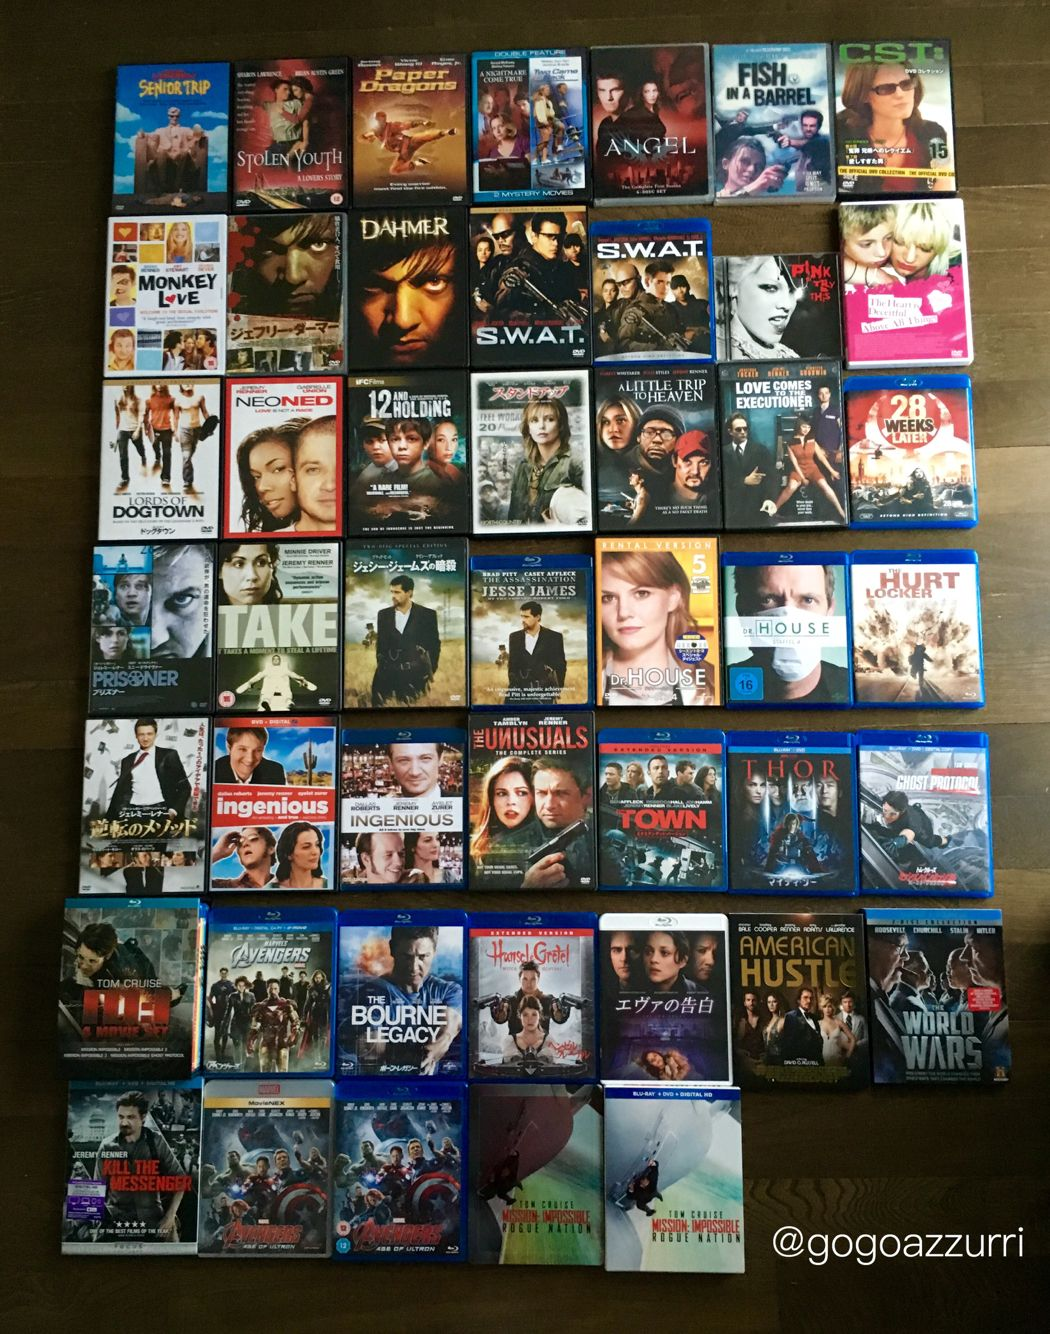 I collected all the DVD & Blu-ray of Jeremy Renner.